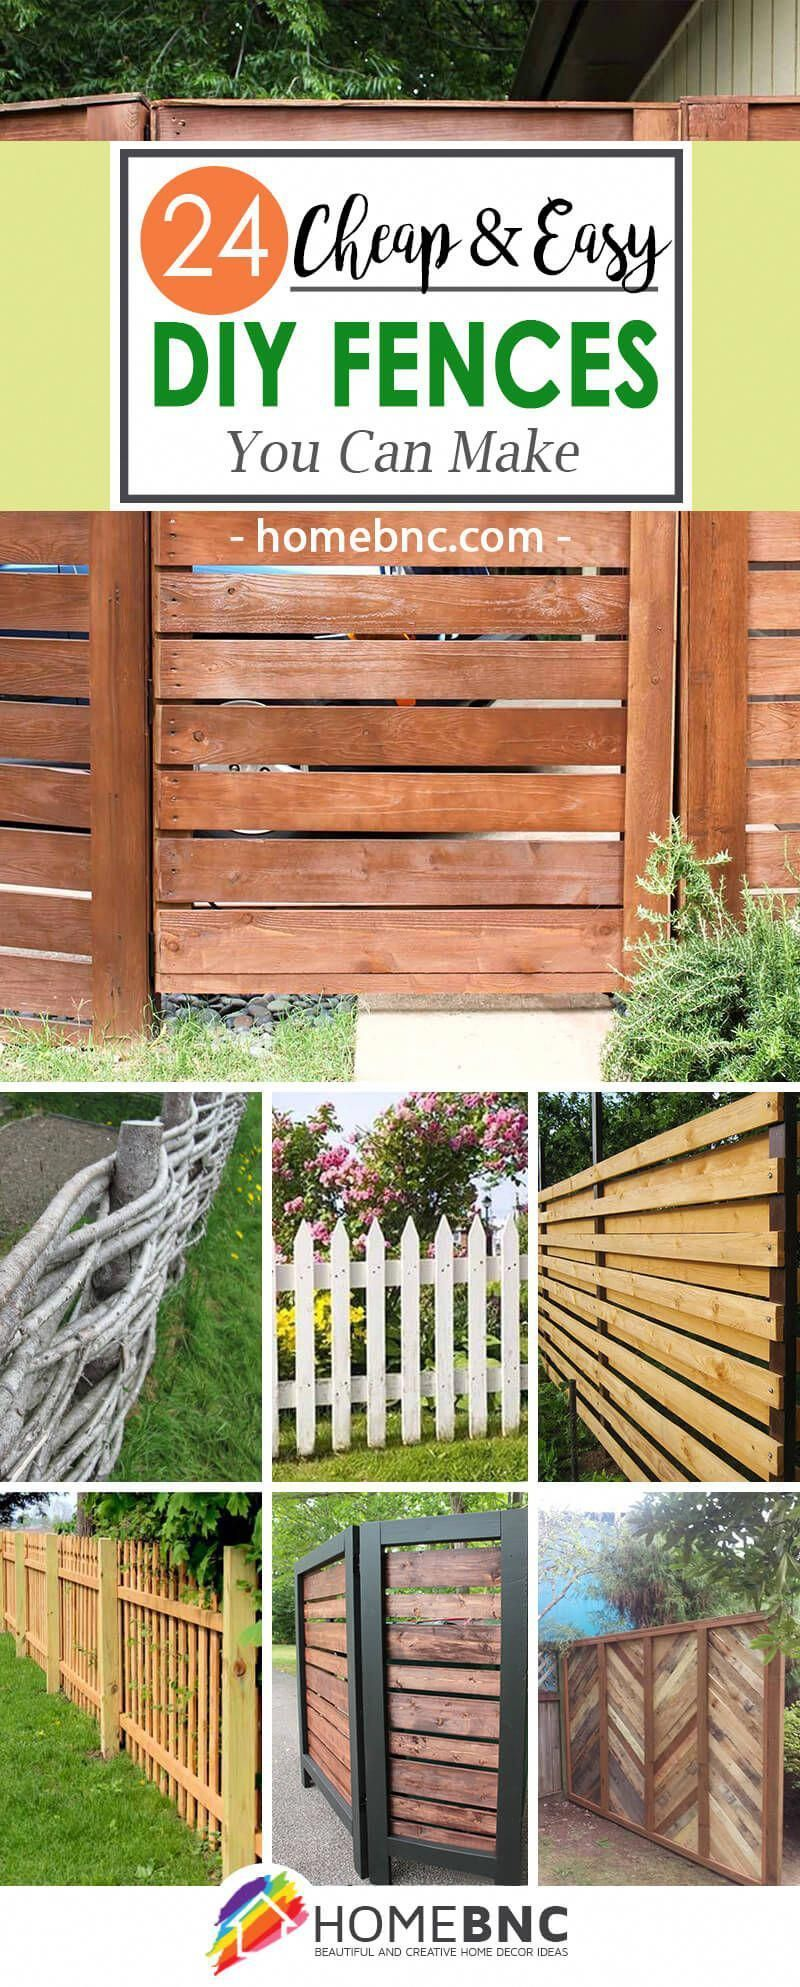 7 Serene Clever Hacks: Stone Fence How To Build blue ...